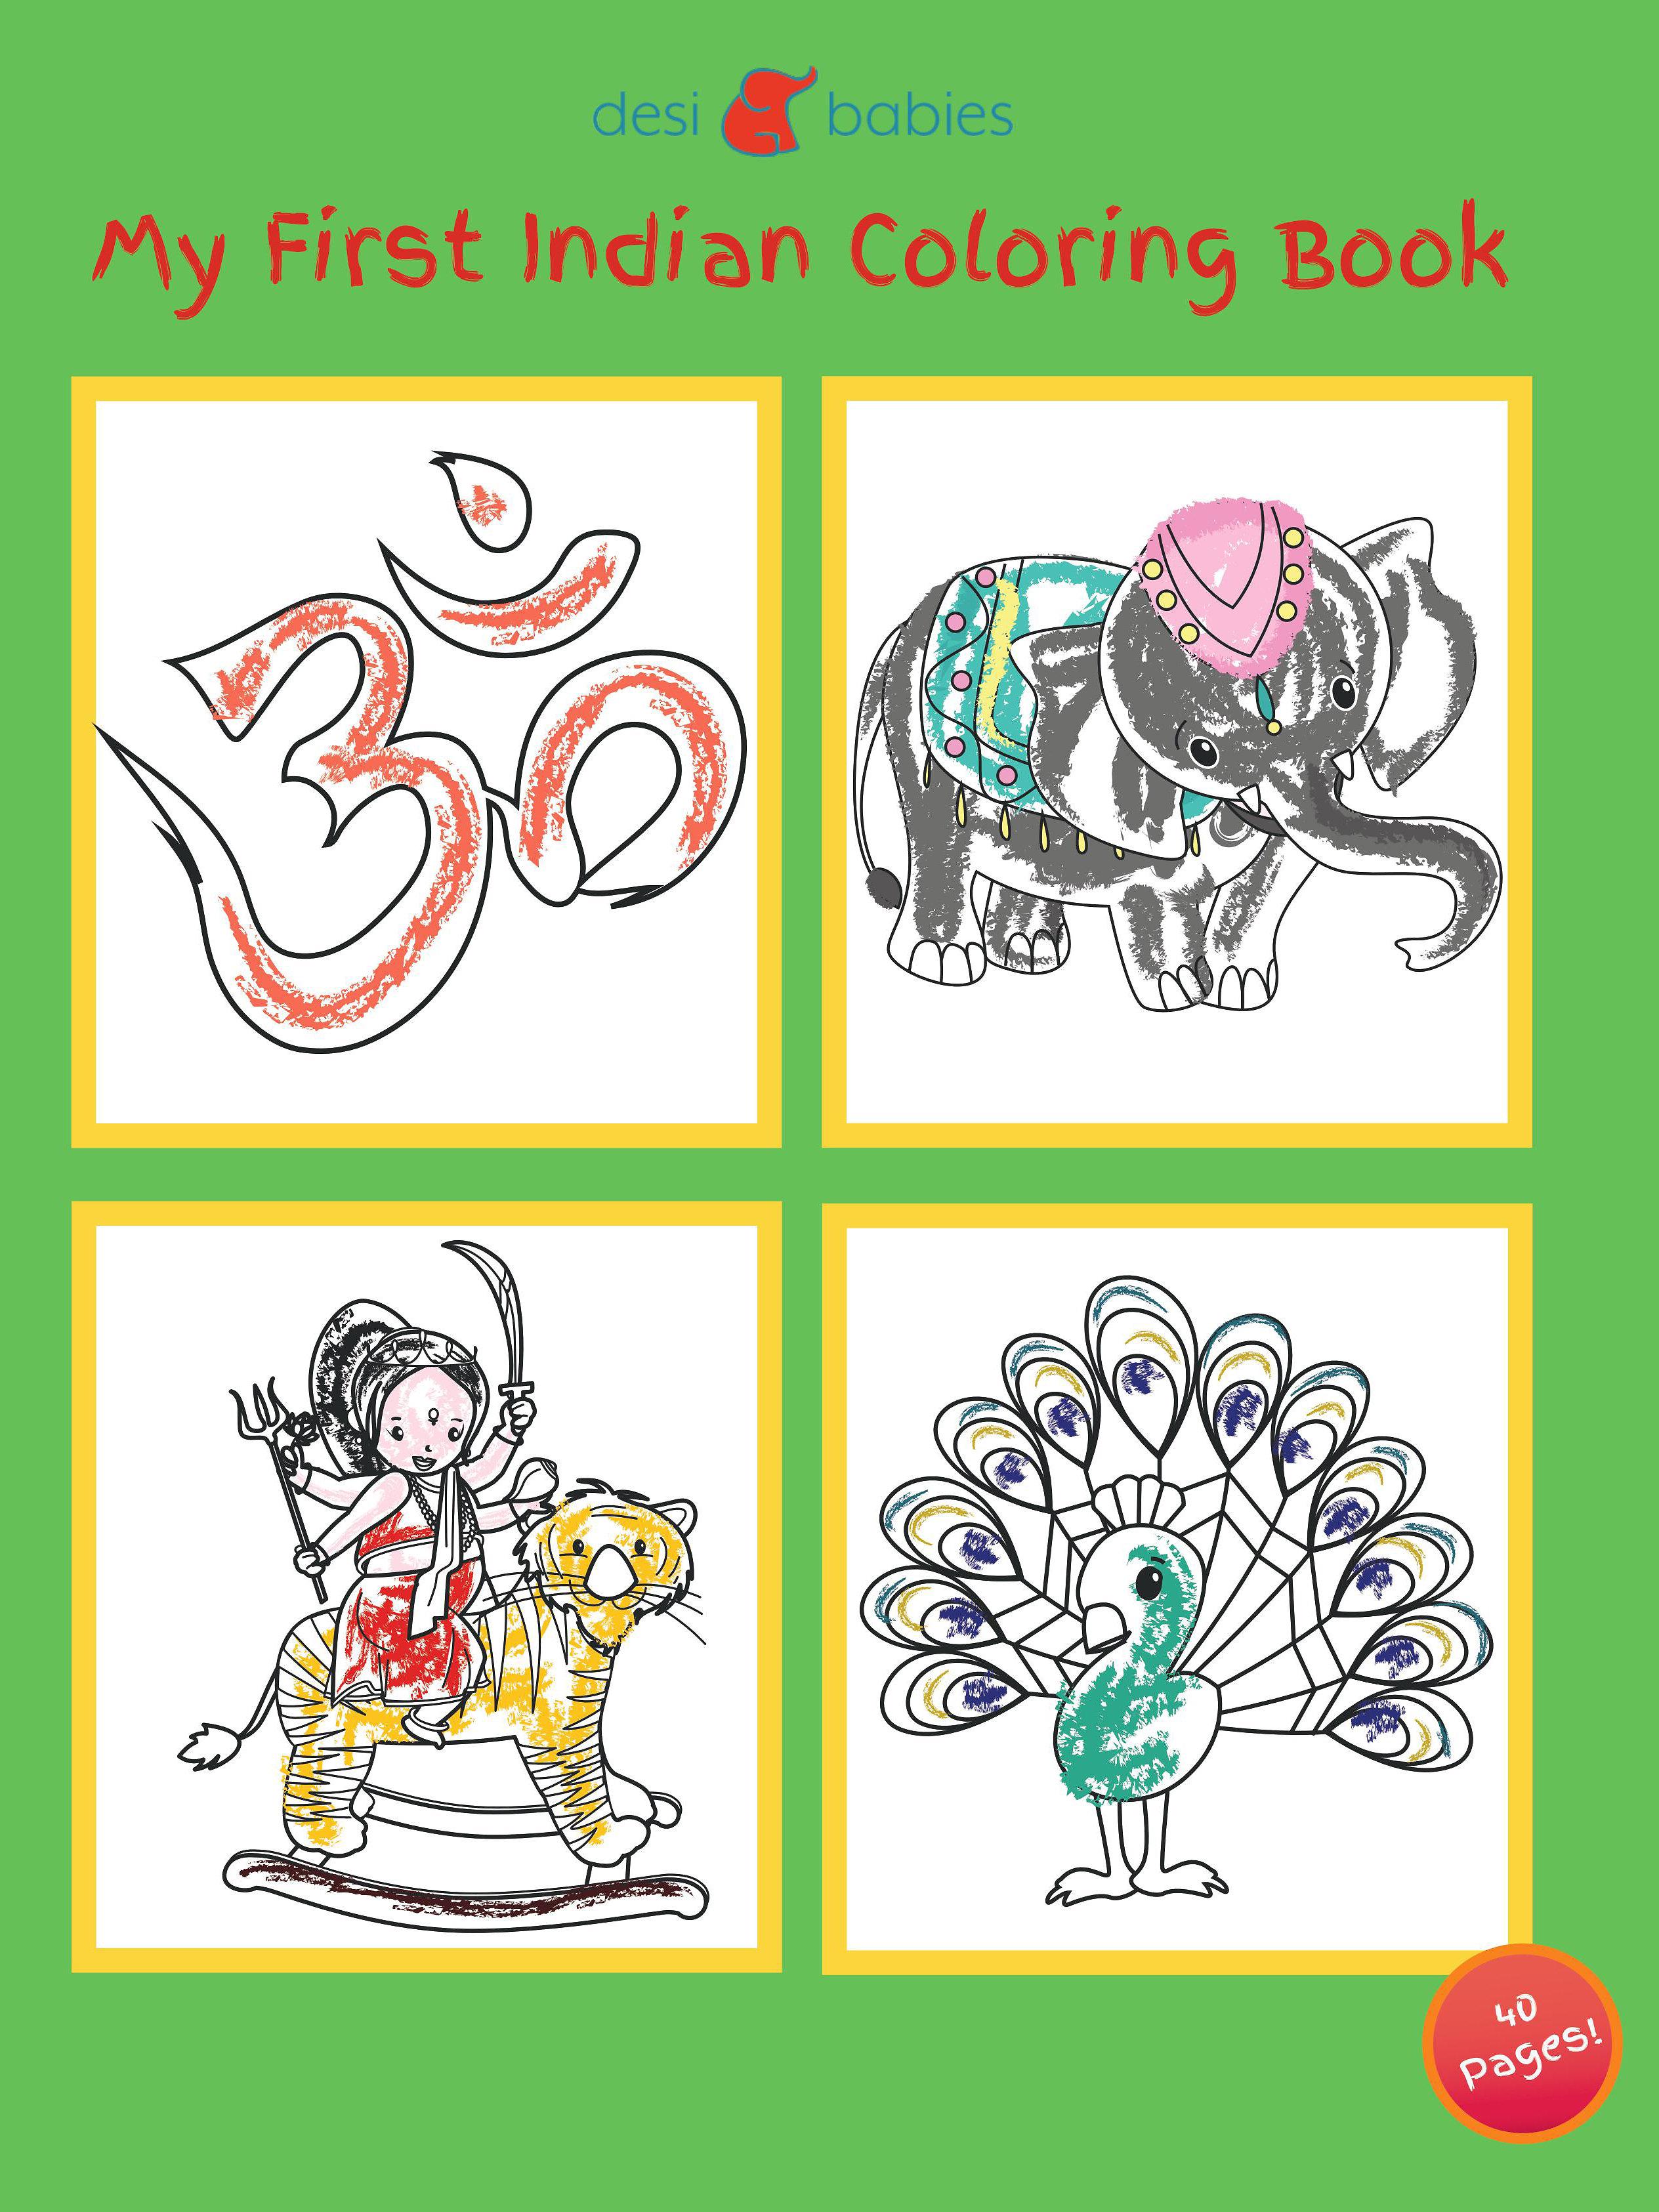 Introduce Your Child To Their Indian Heritage And Culture Through The Drawings In This Coloring Book